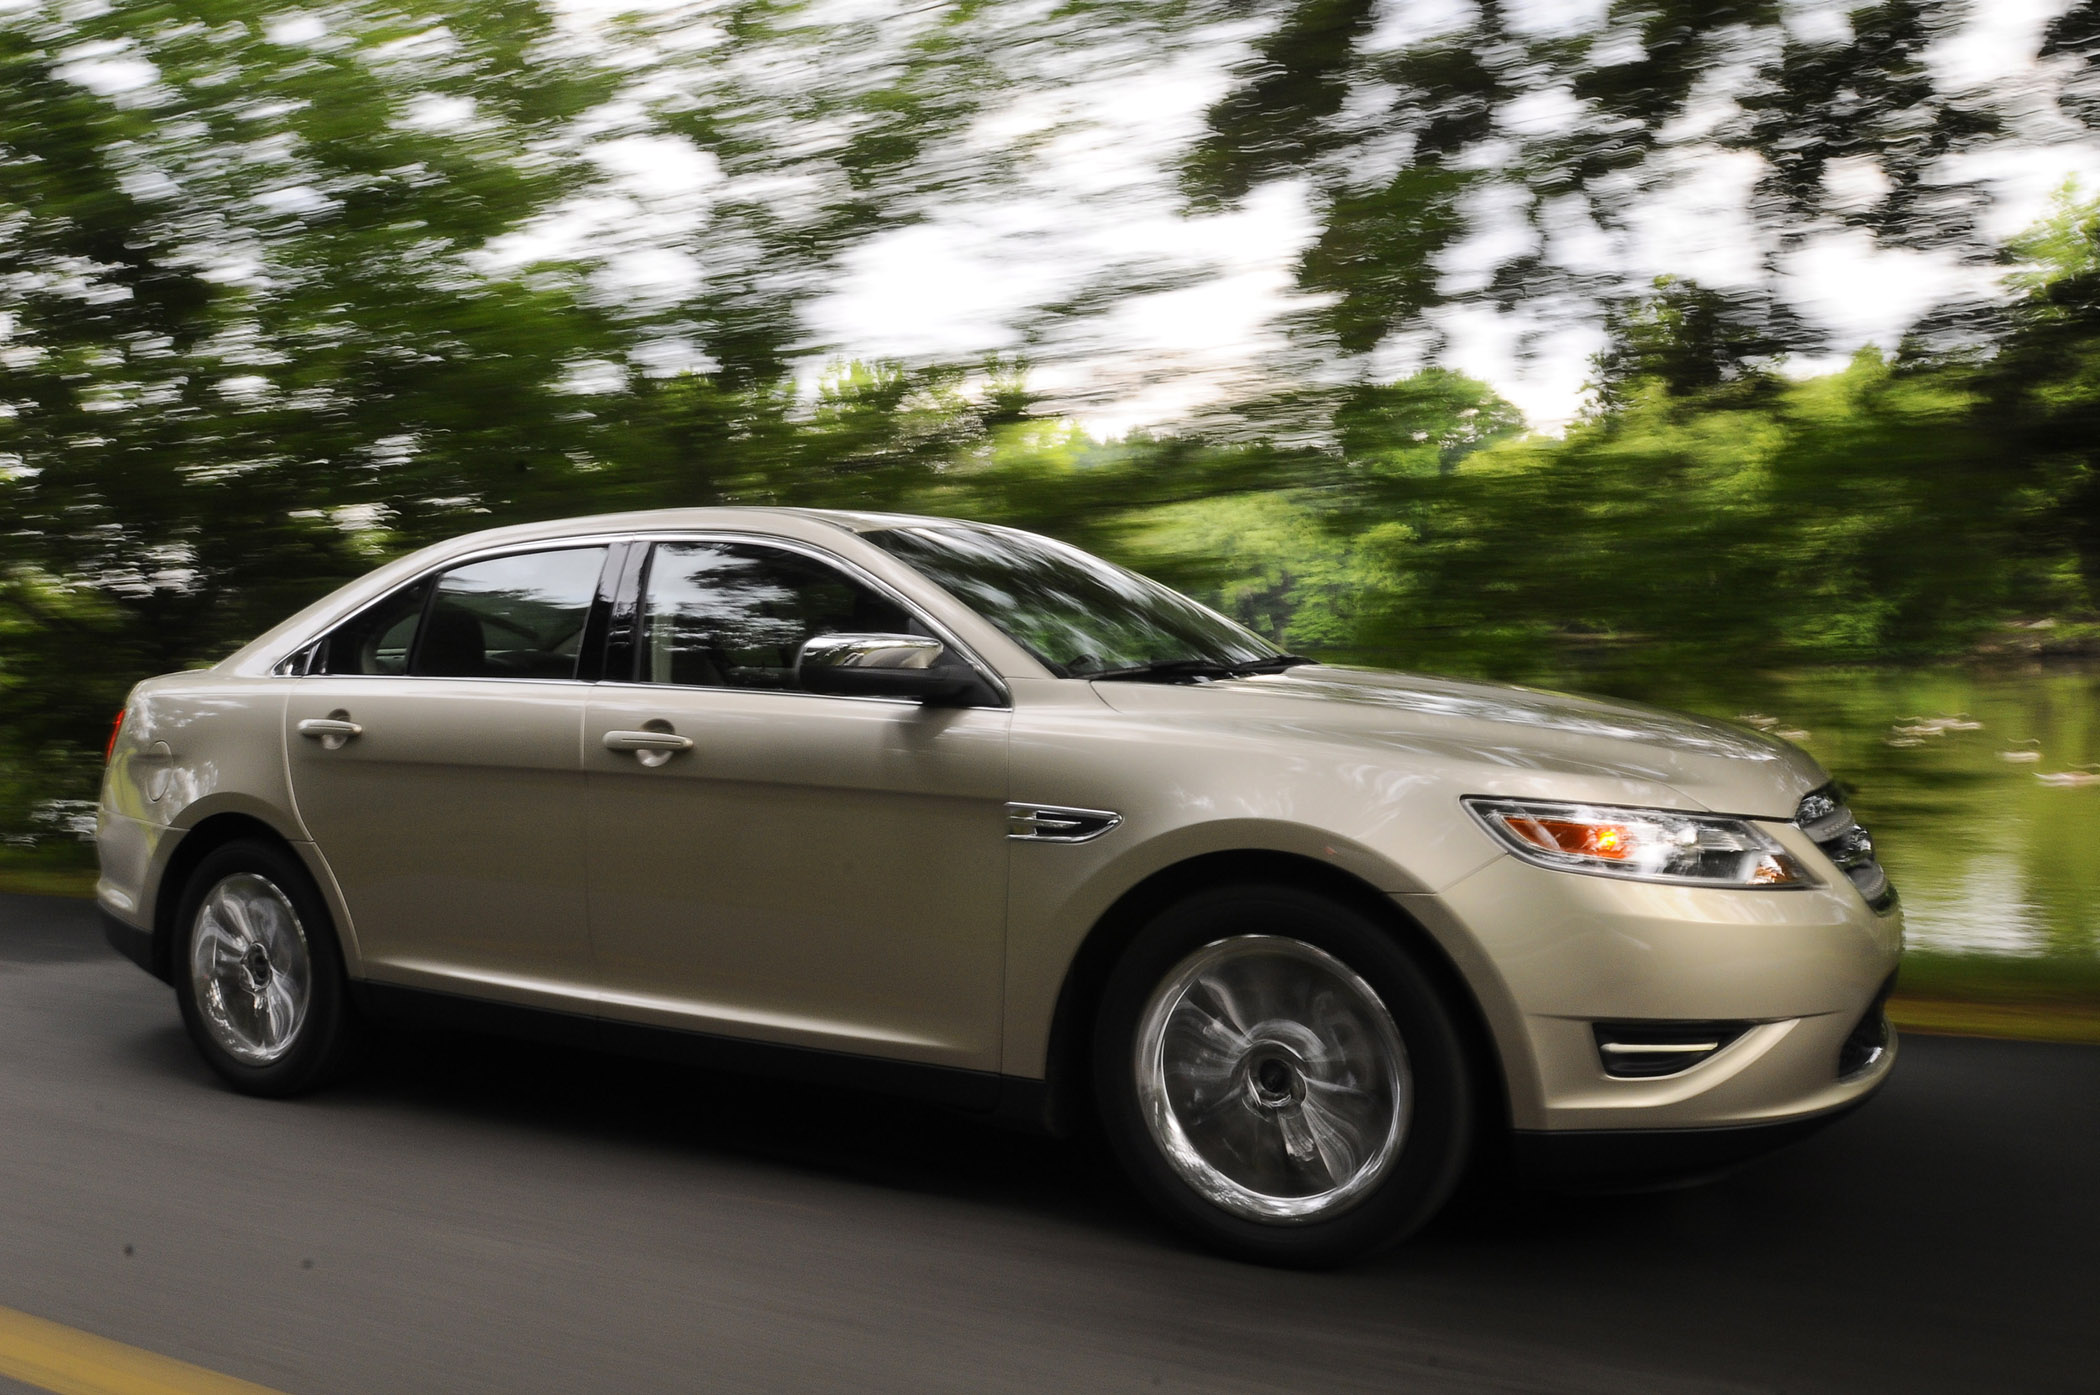 new 2010 ford taurus has style and substance down the road groovecar. Black Bedroom Furniture Sets. Home Design Ideas